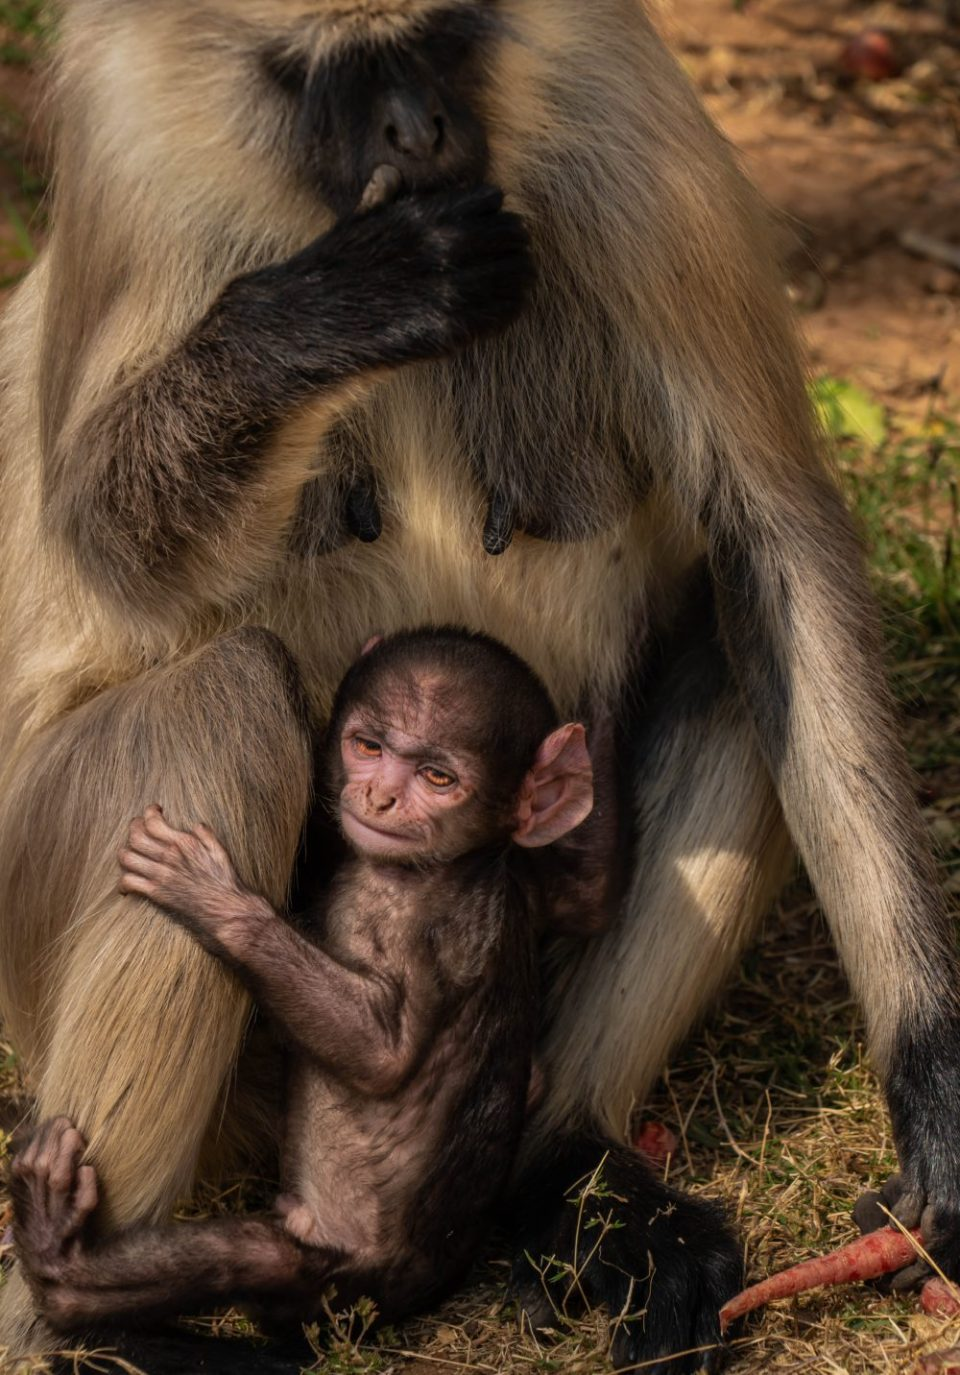 Langur monkeys are seen at every tourist site in Rajasthan.